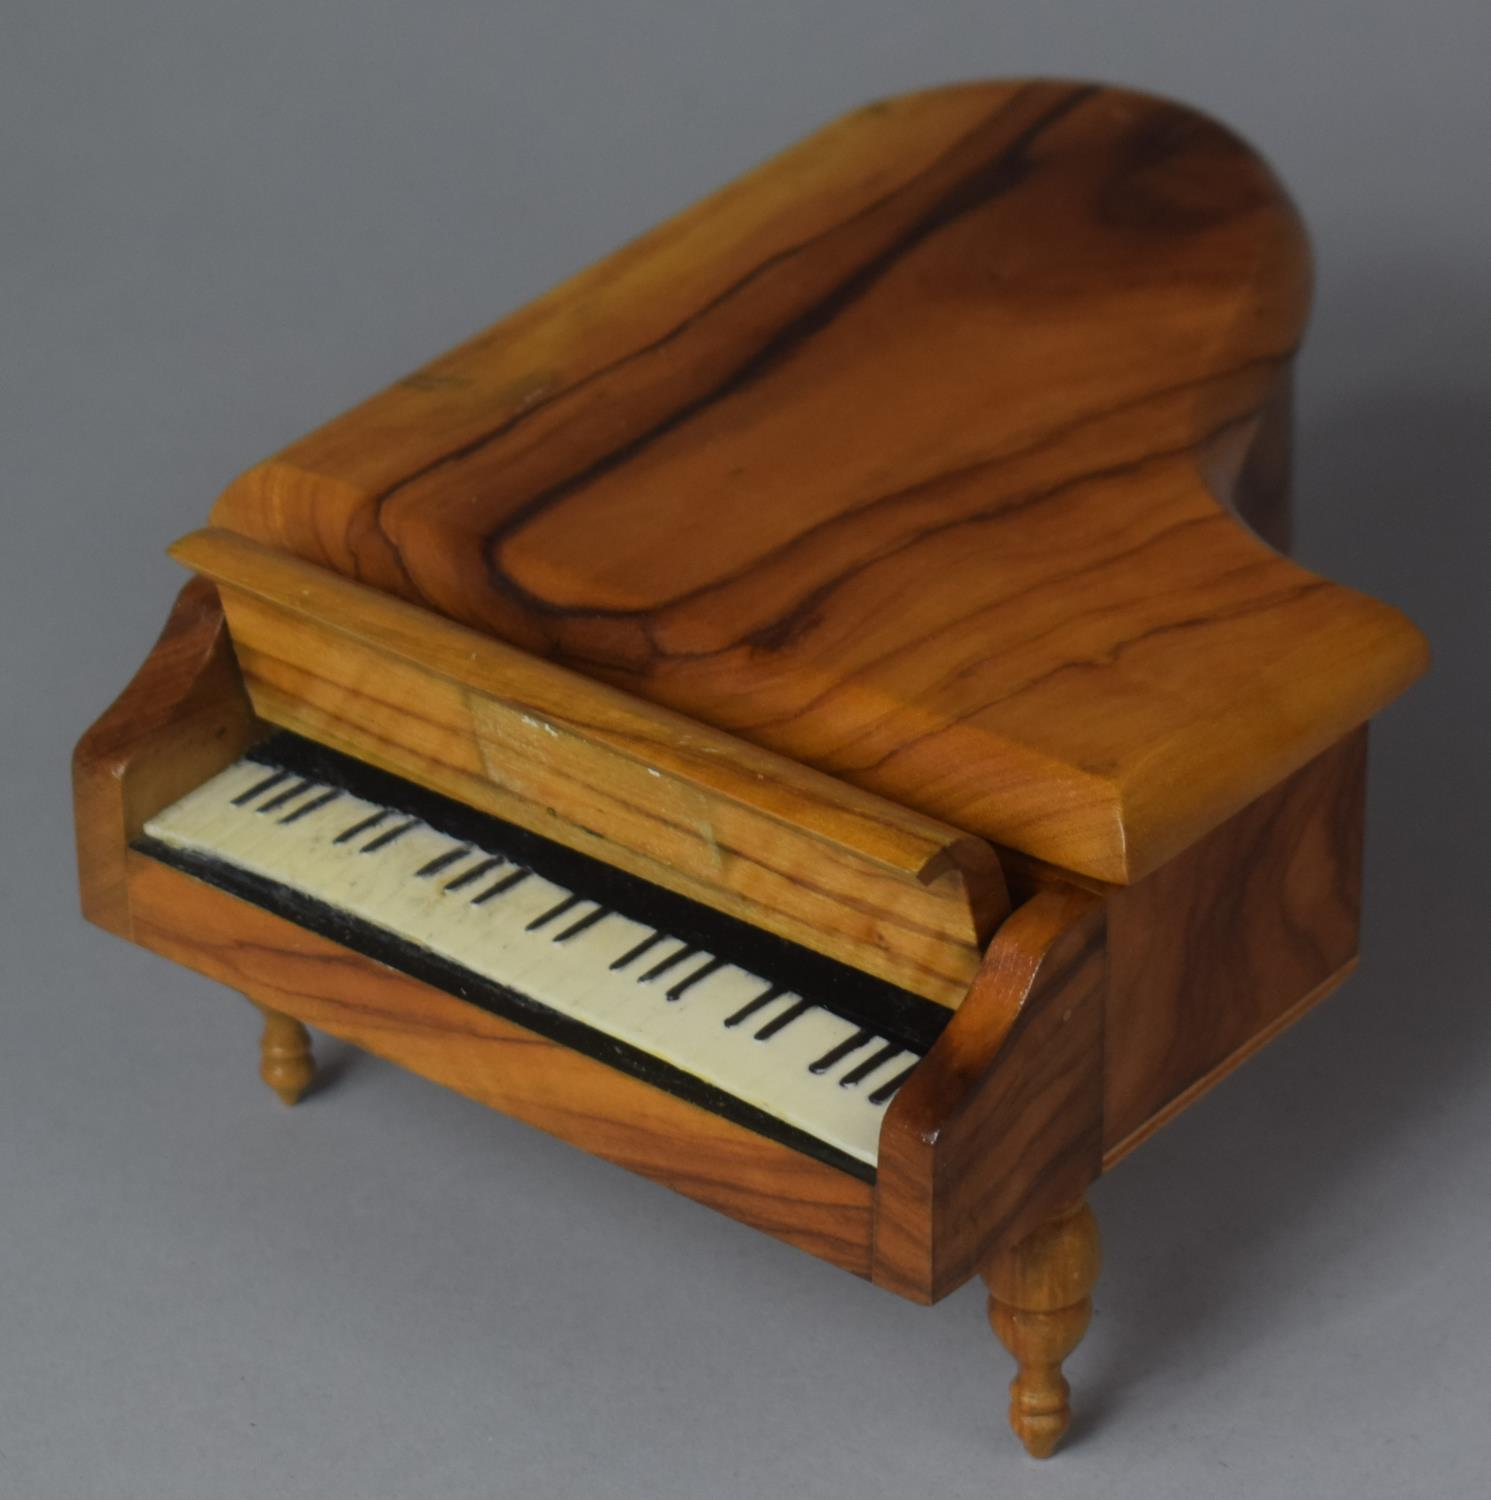 A Novelty Continental Musical Box in the Form of a Grand Piano, Movement Playing Dr. Zhivago, 17cm - Image 2 of 5